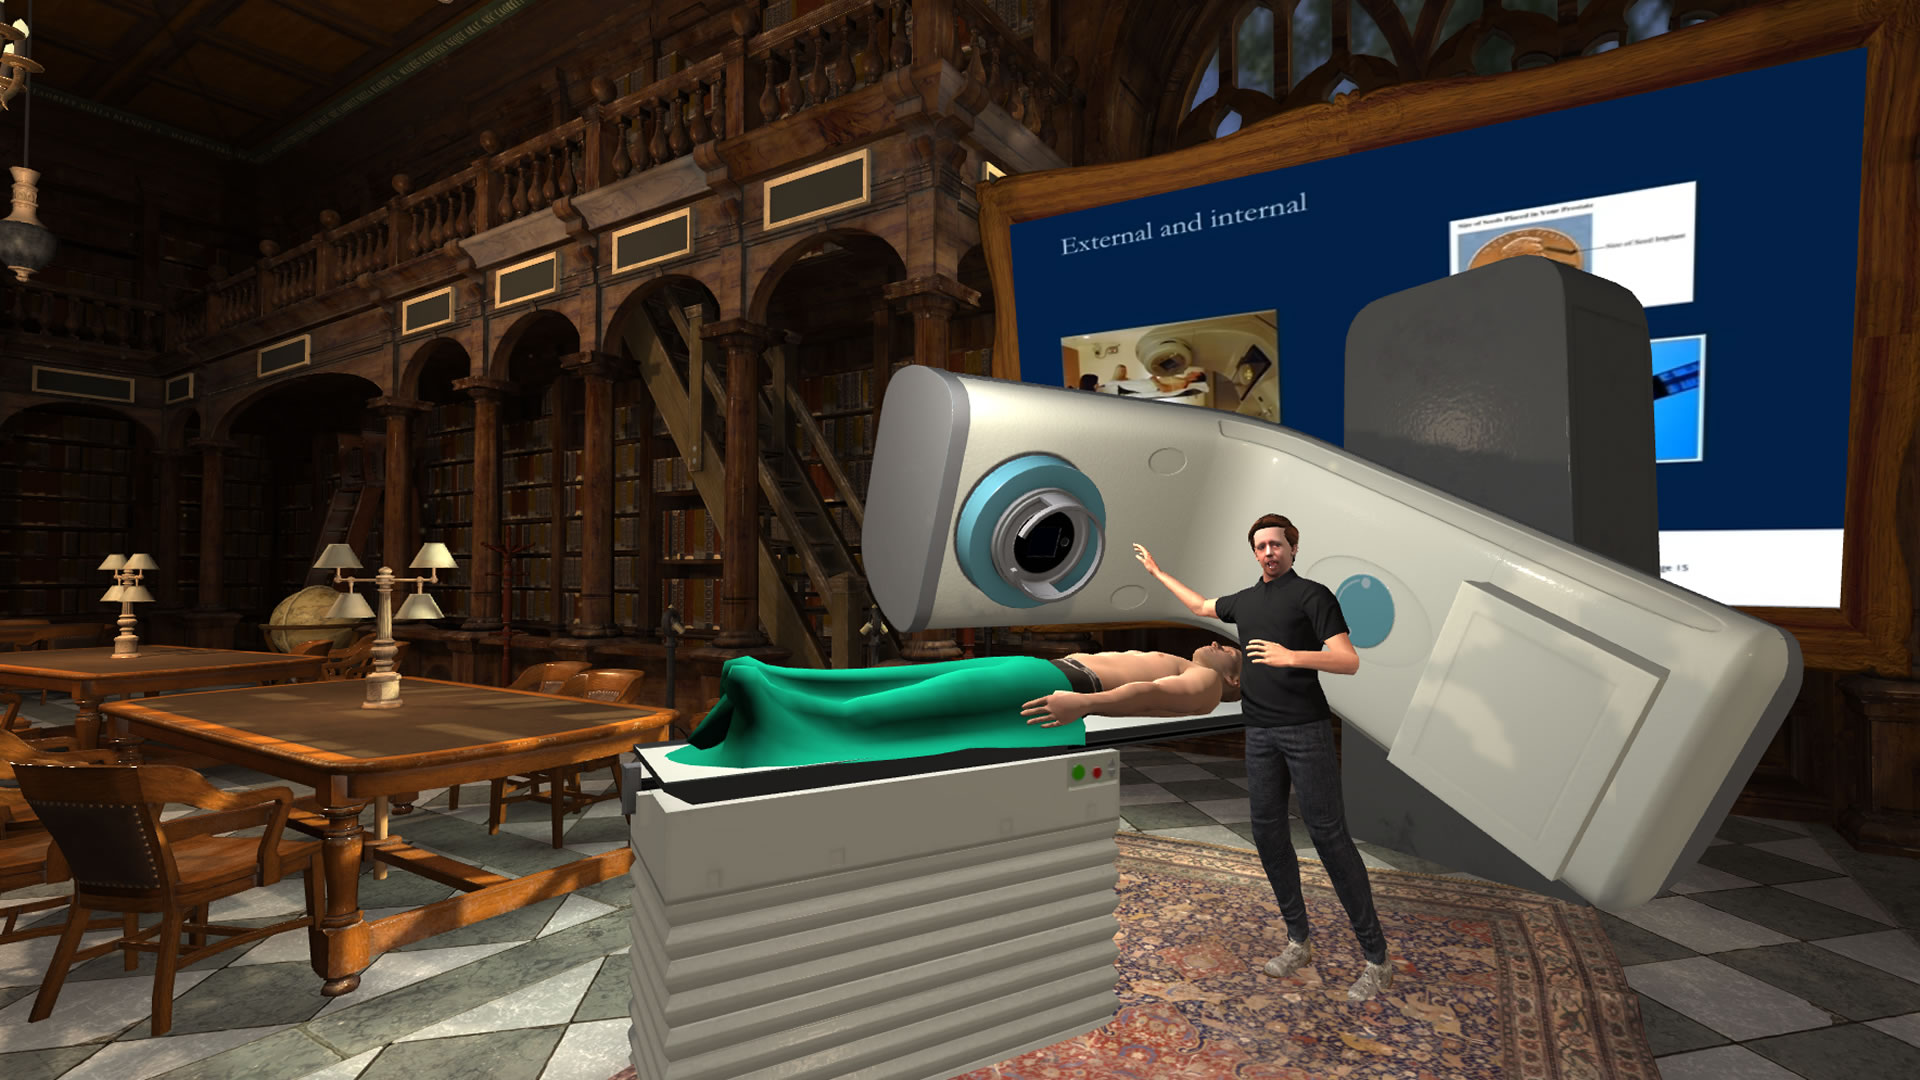 Social VR Platform 'ENGAGE' Generated Over $1.4M in Revenue in First Half of 2021